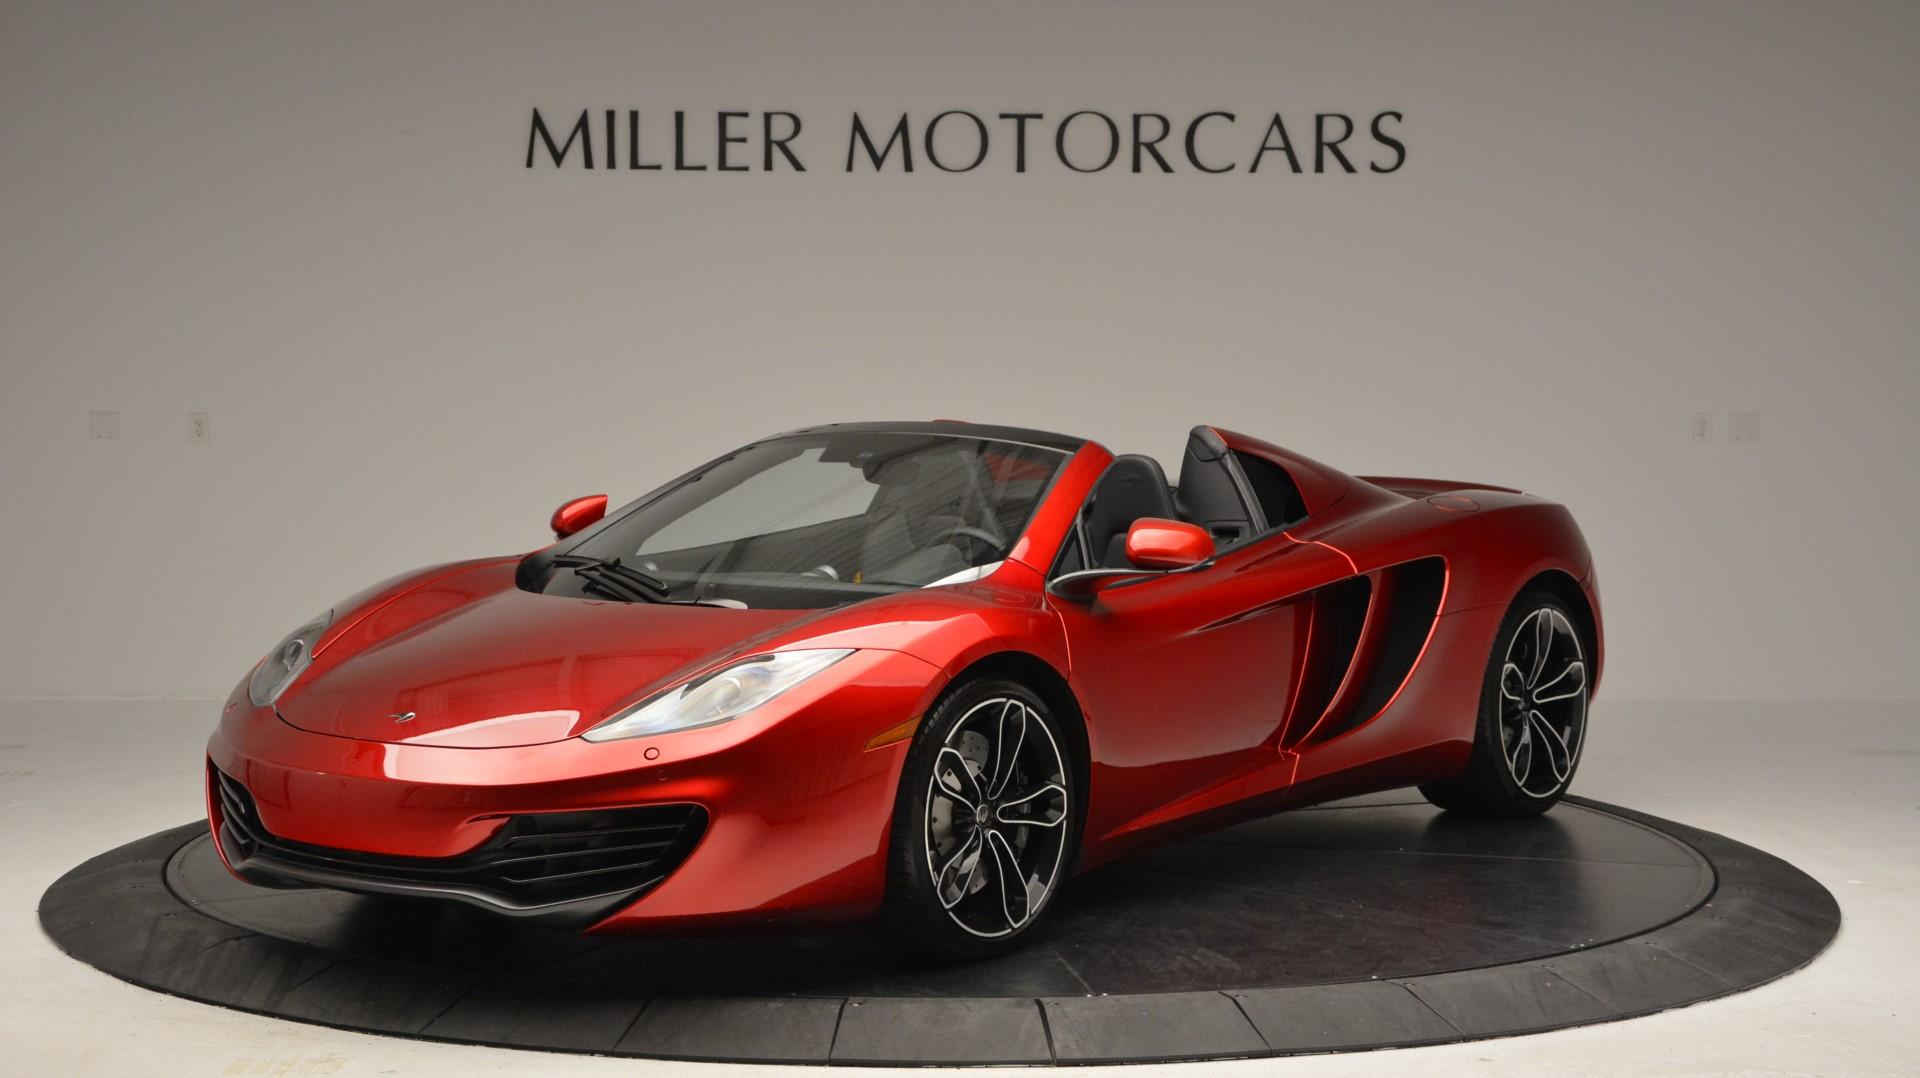 Used 2013 McLaren 12C Spider for sale Sold at Pagani of Greenwich in Greenwich CT 06830 1